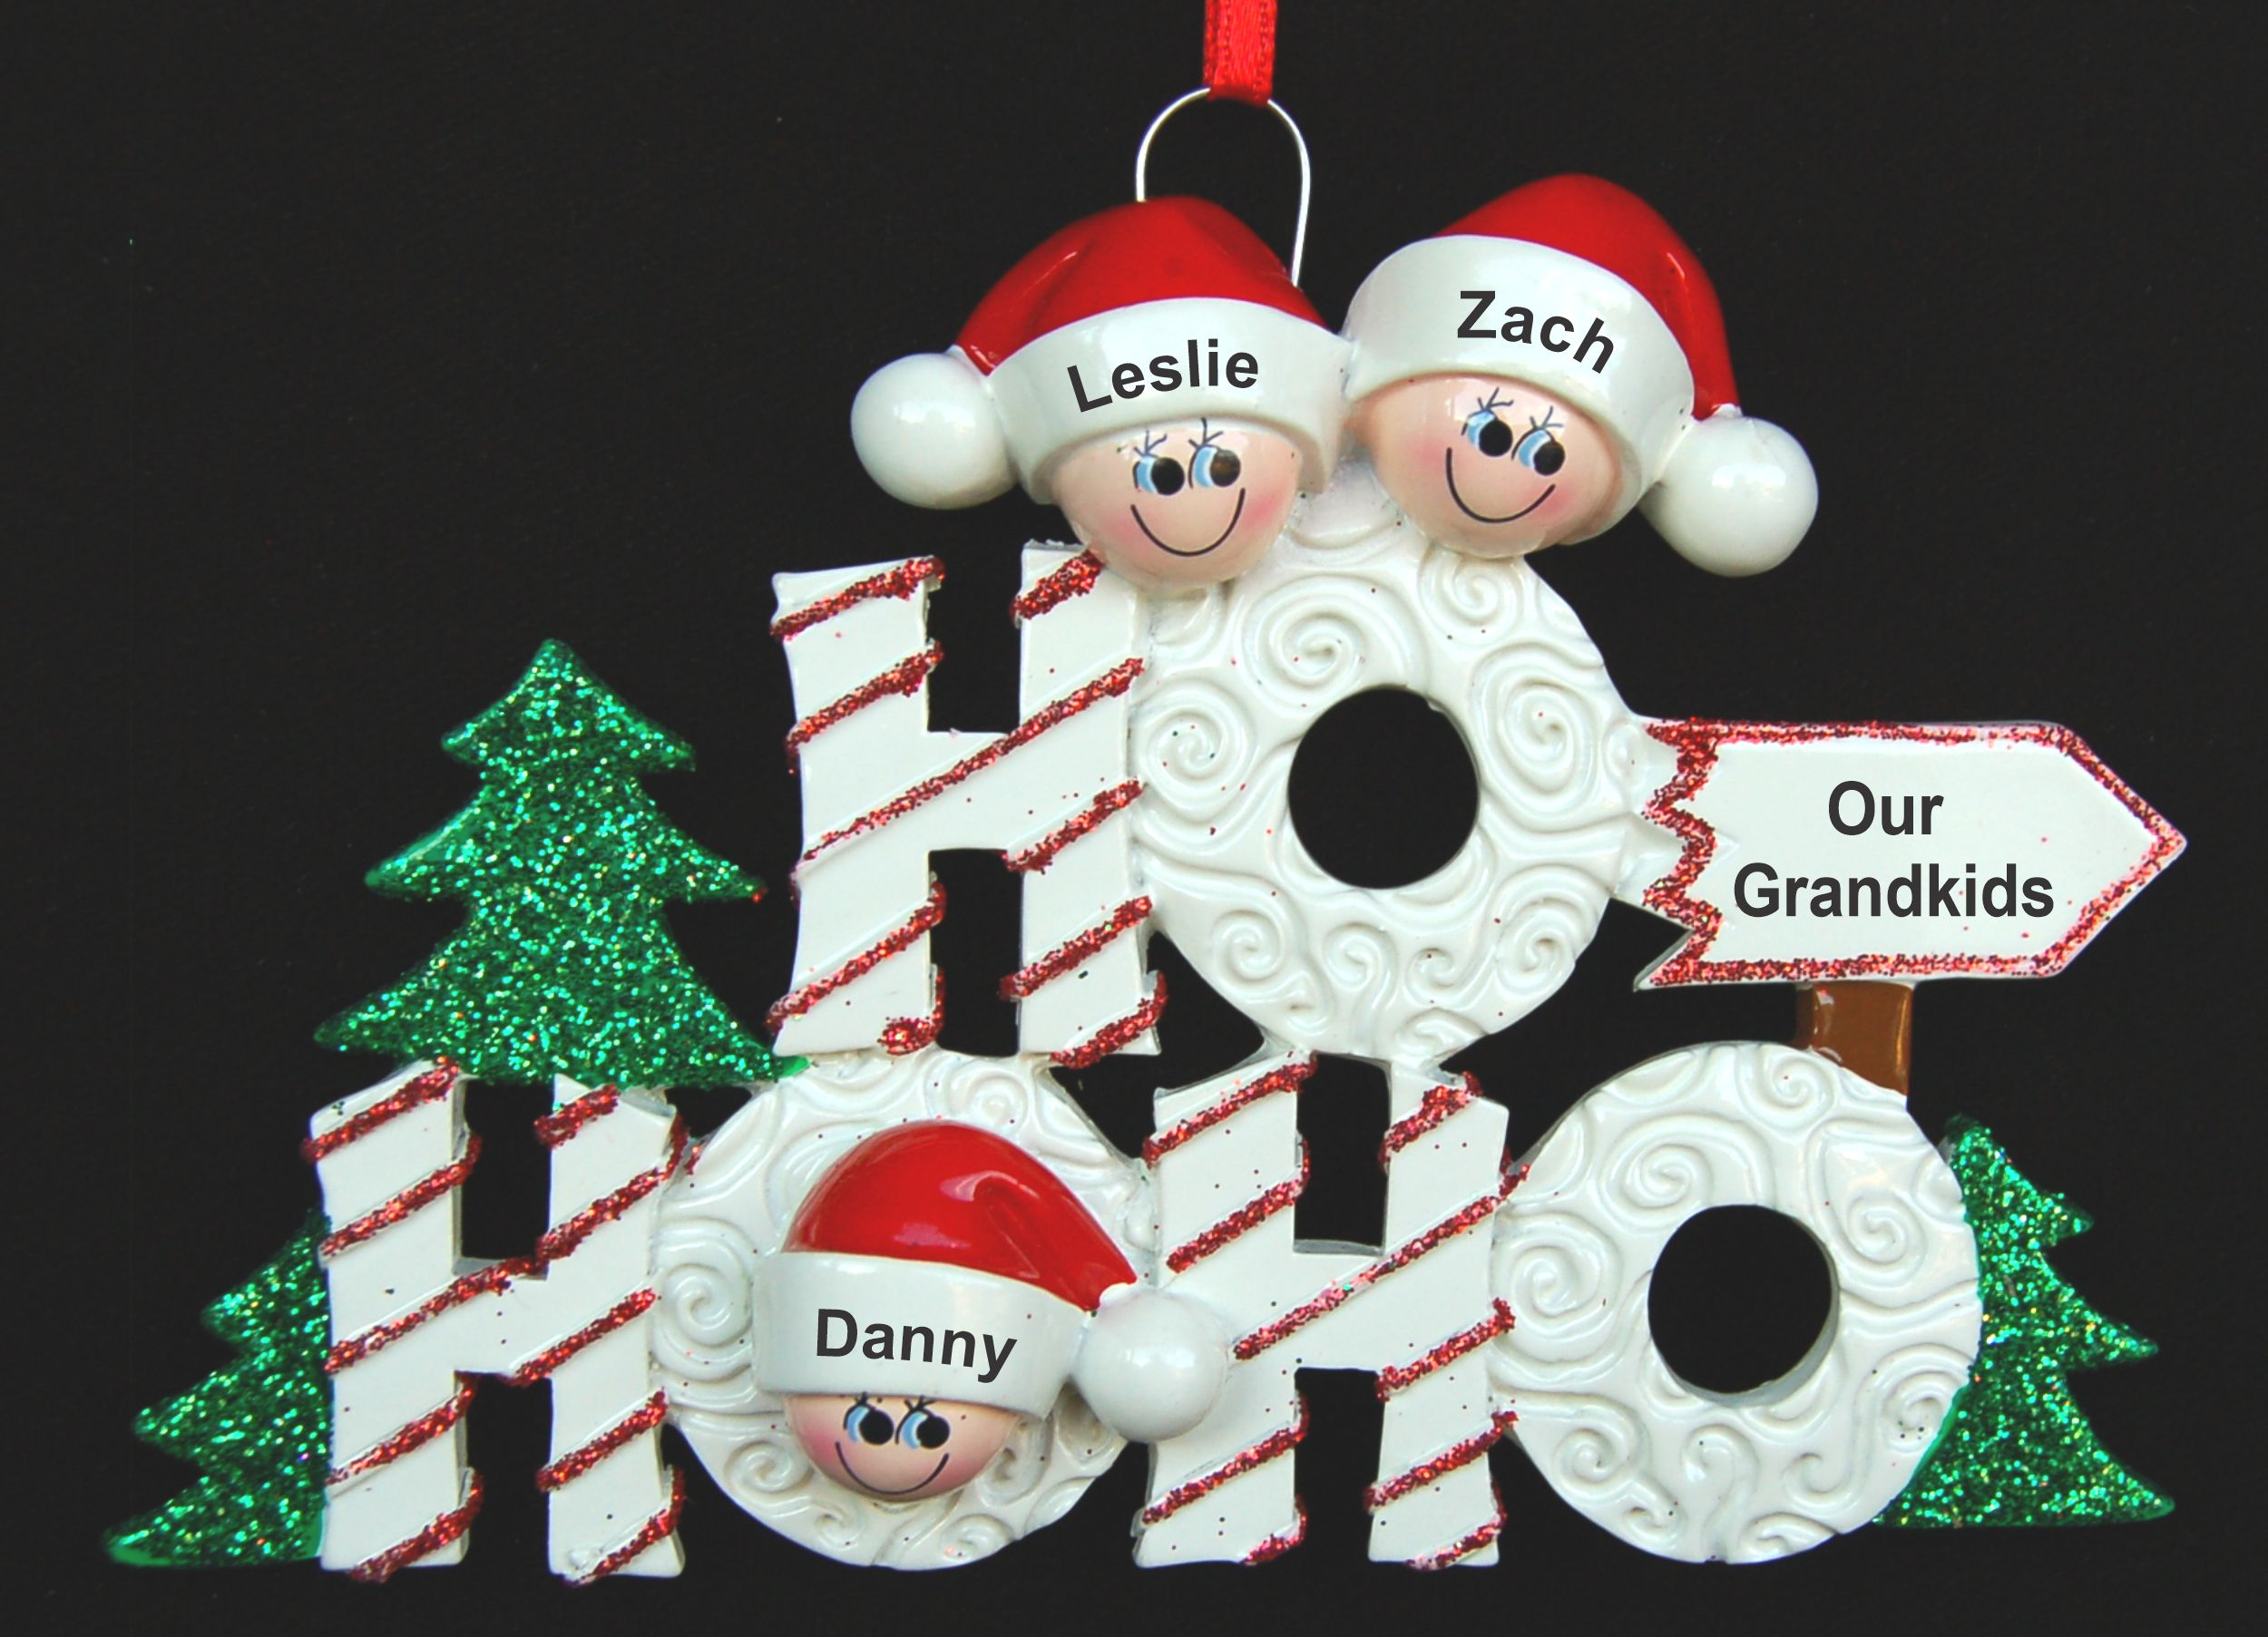 Personalized Grandparents Christmas Ornament Ho Ho Ho 3 Grandkids by Russell Rhodes